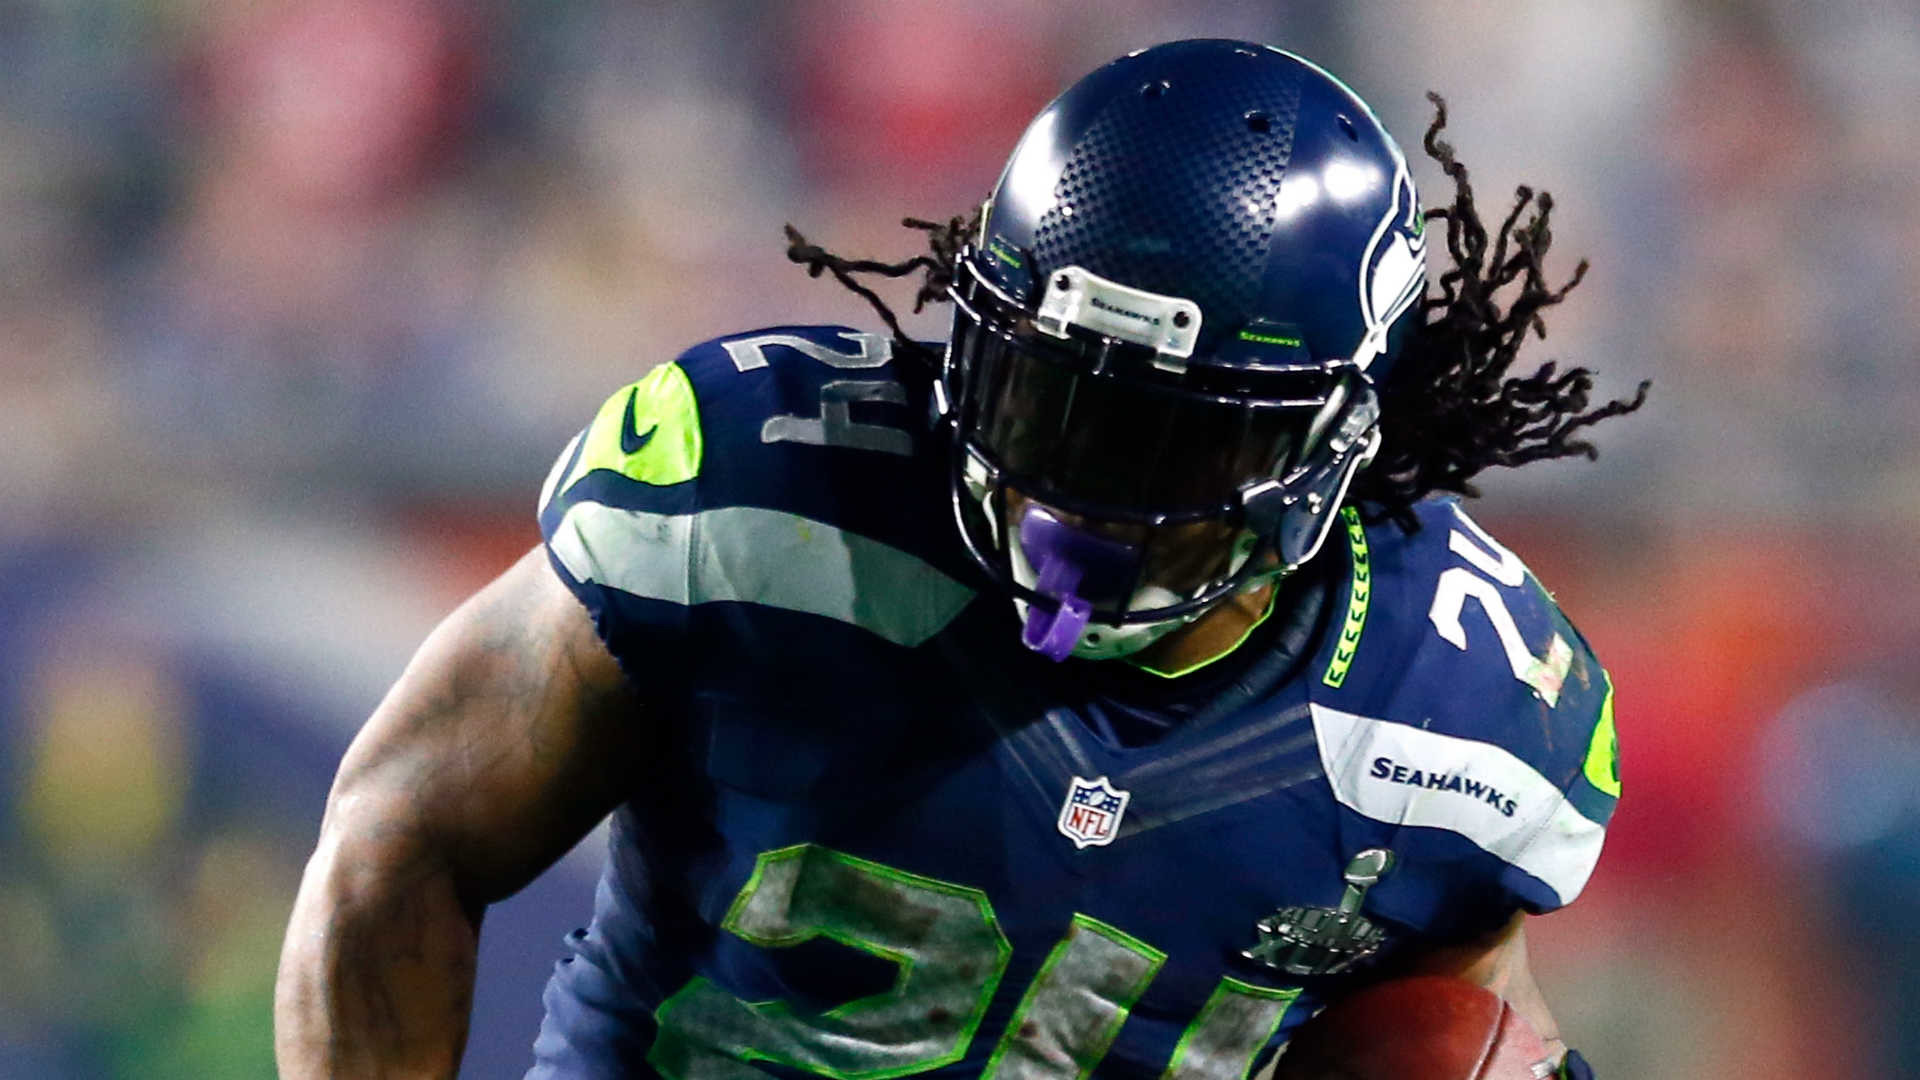 The truth about Marshawn Lynch from the 1-yard line | NFL | Sporting News